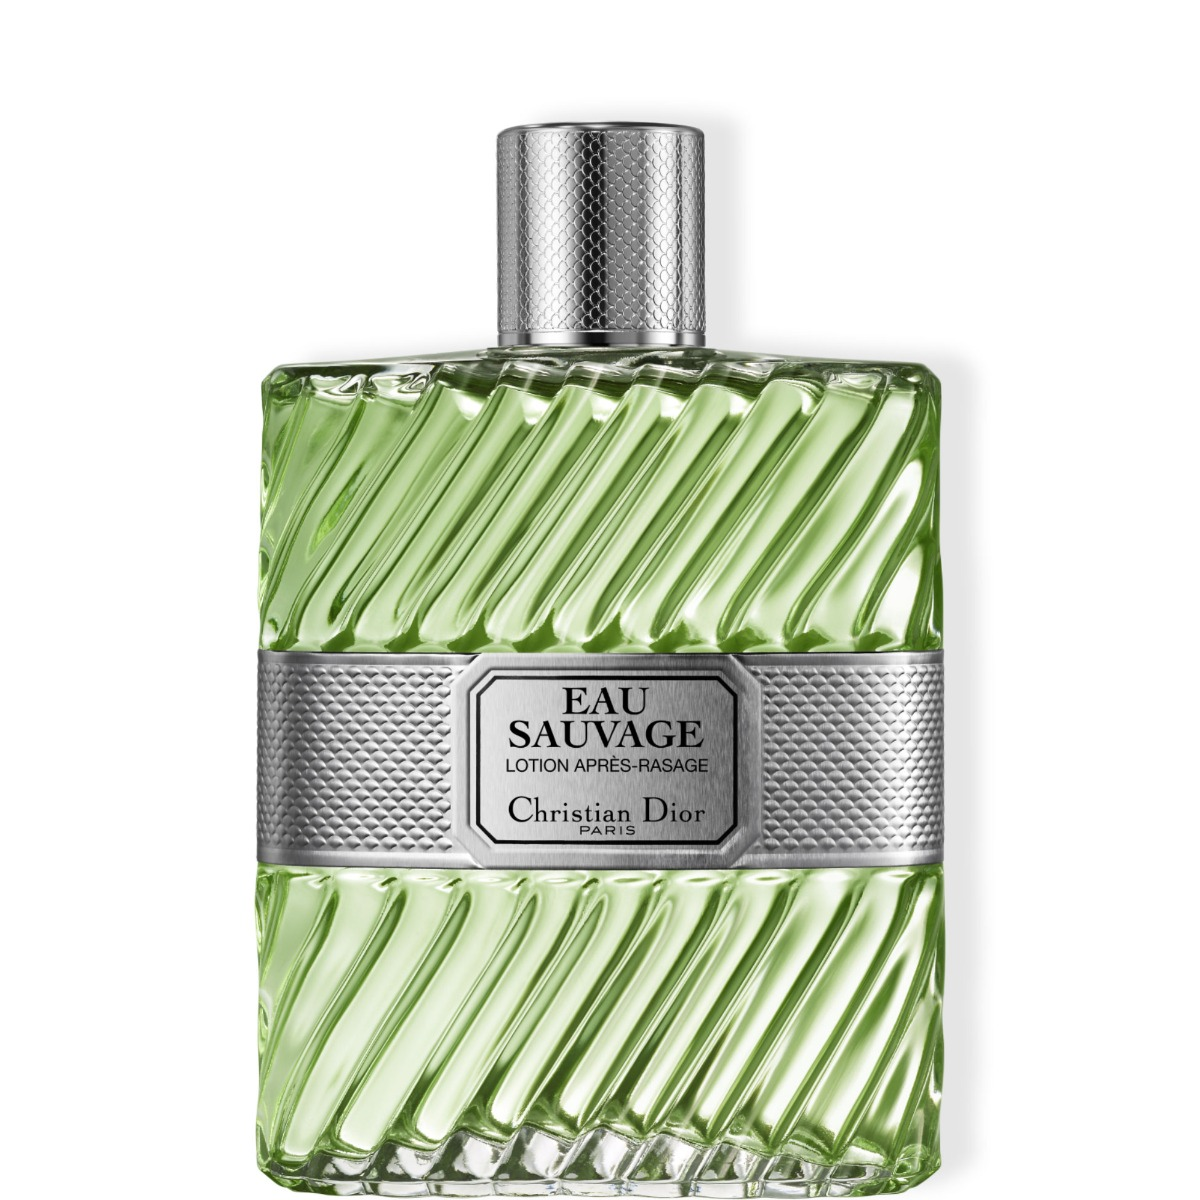 Afbeelding van Christian Dior Eau Sauvage After shave lotion 200 ml